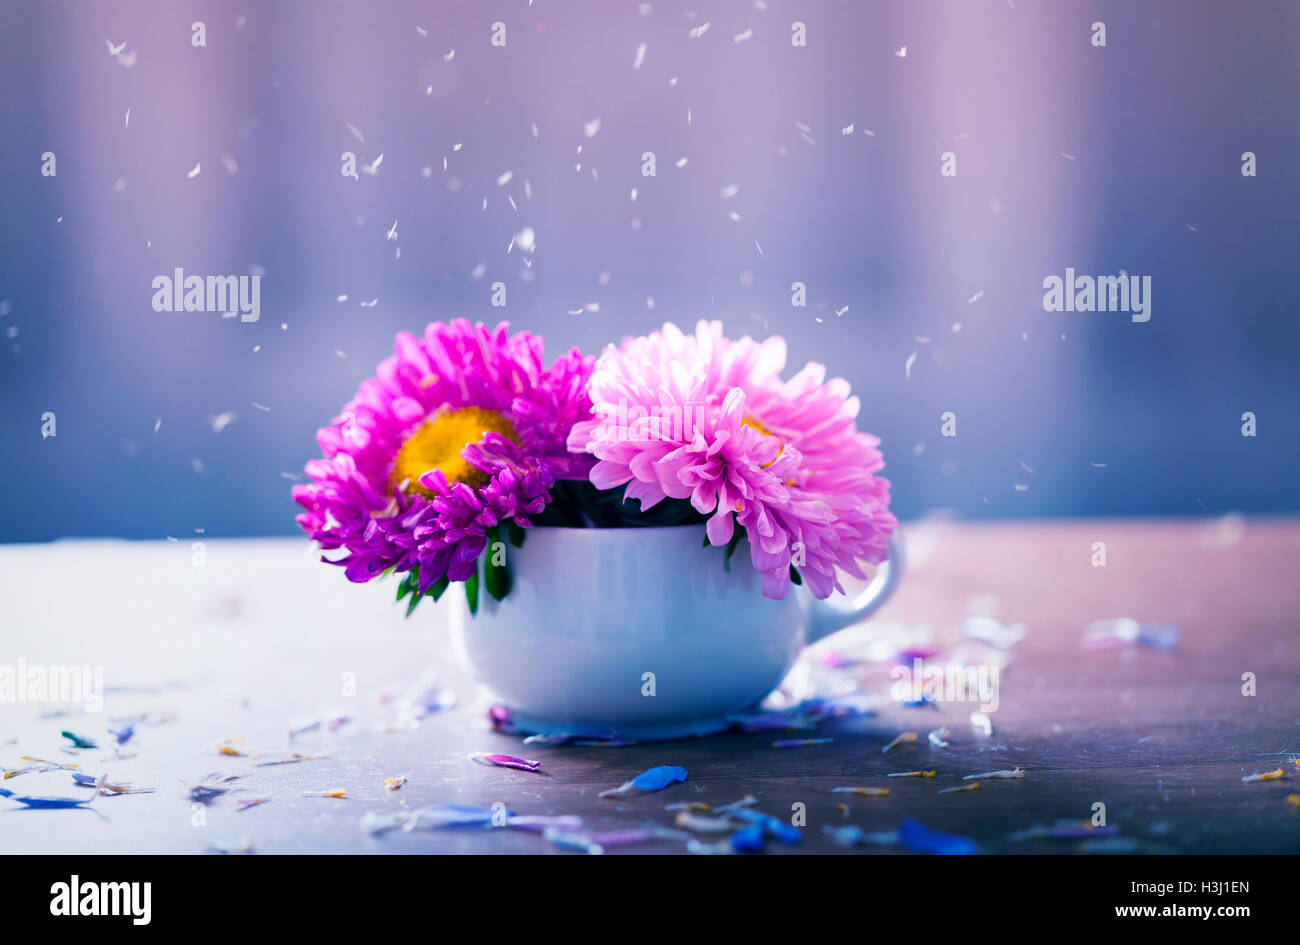 Aster flowers in pot and falling petals - autumn concept - Stock Image